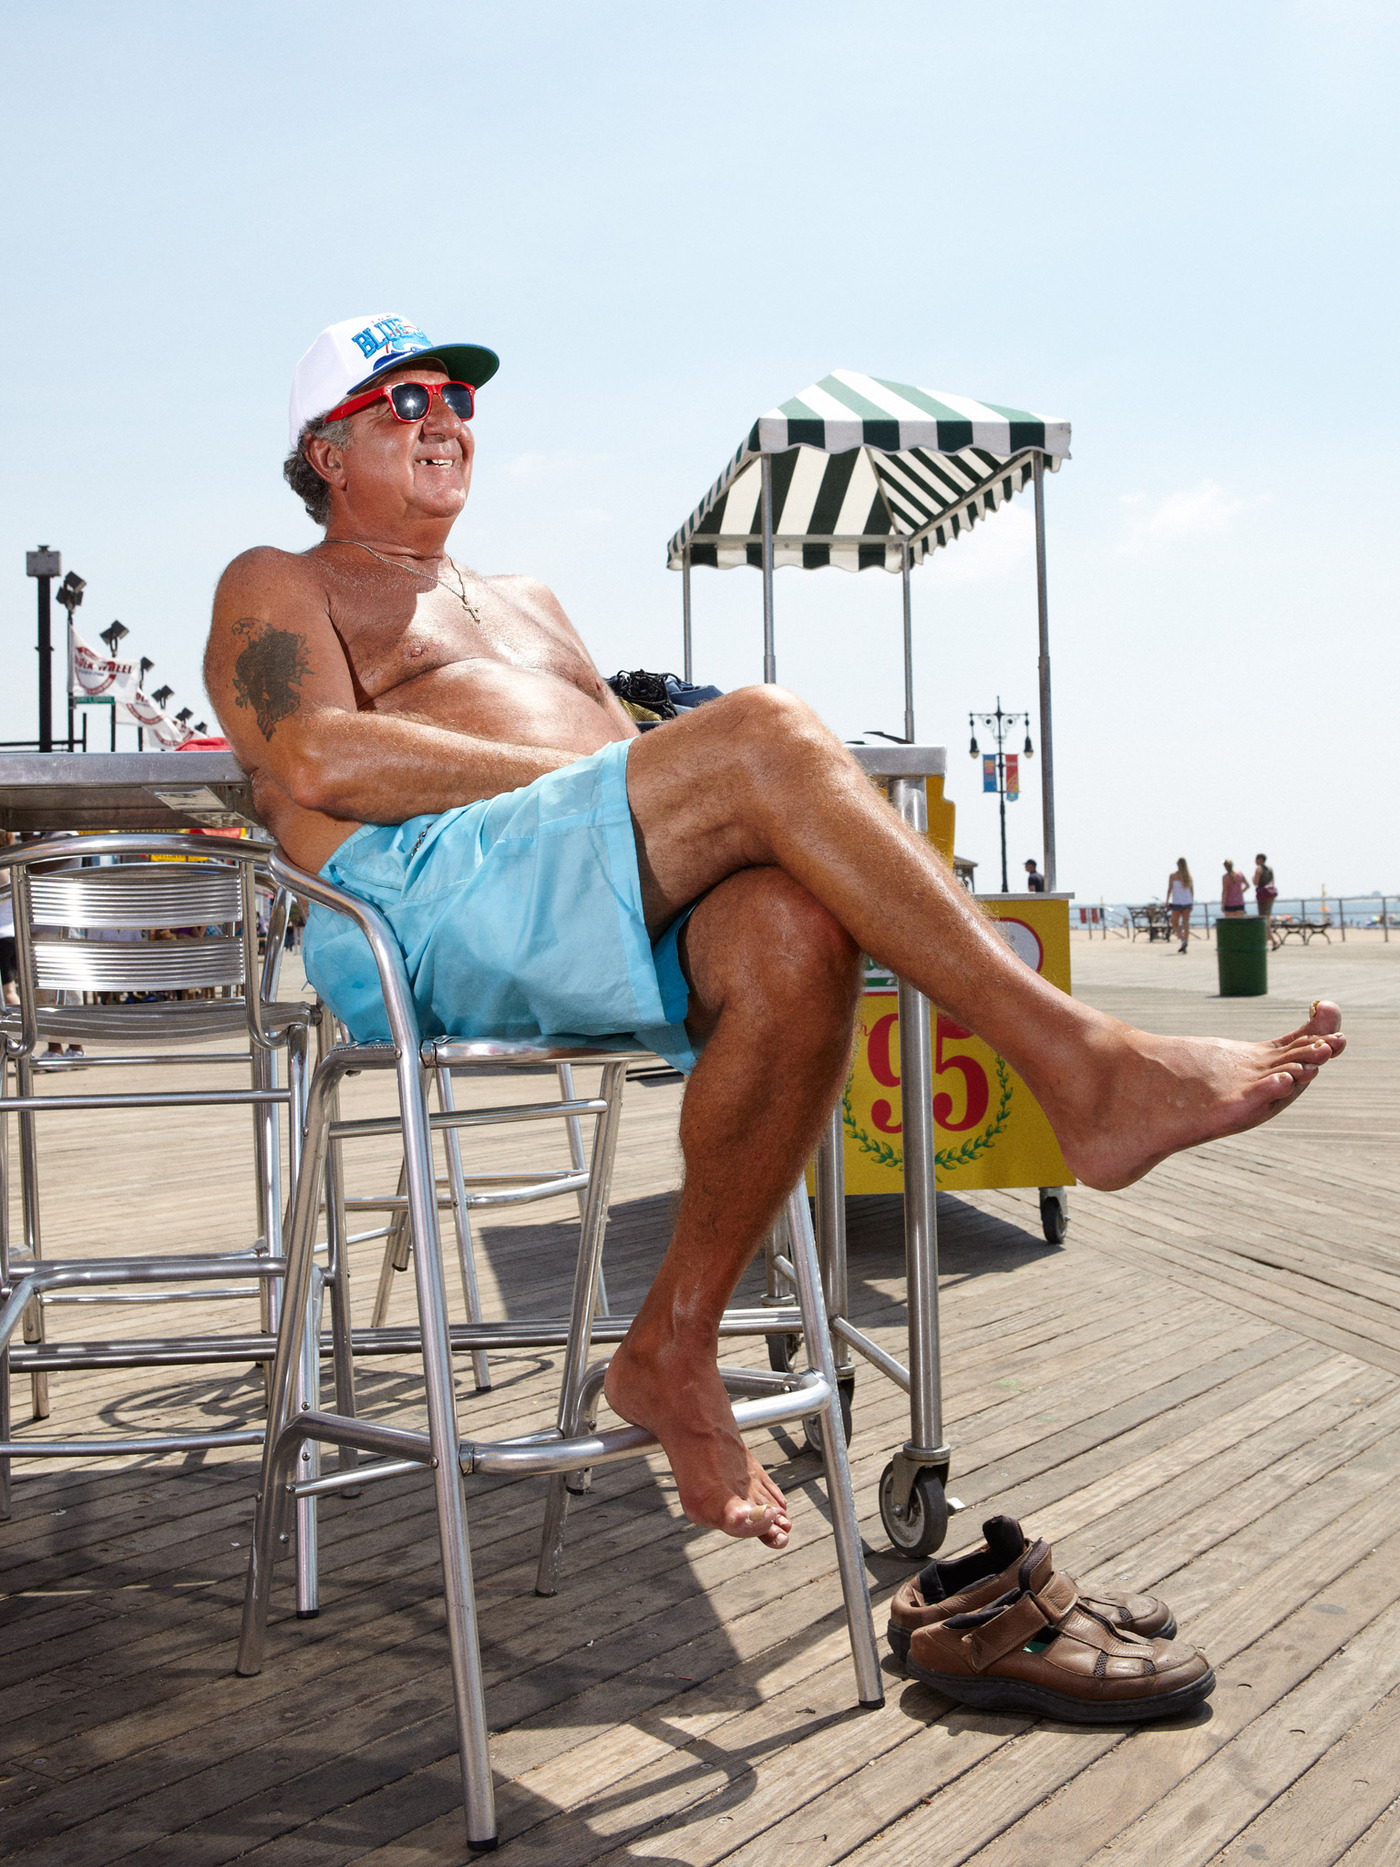 reed-young-blog-coney-island01